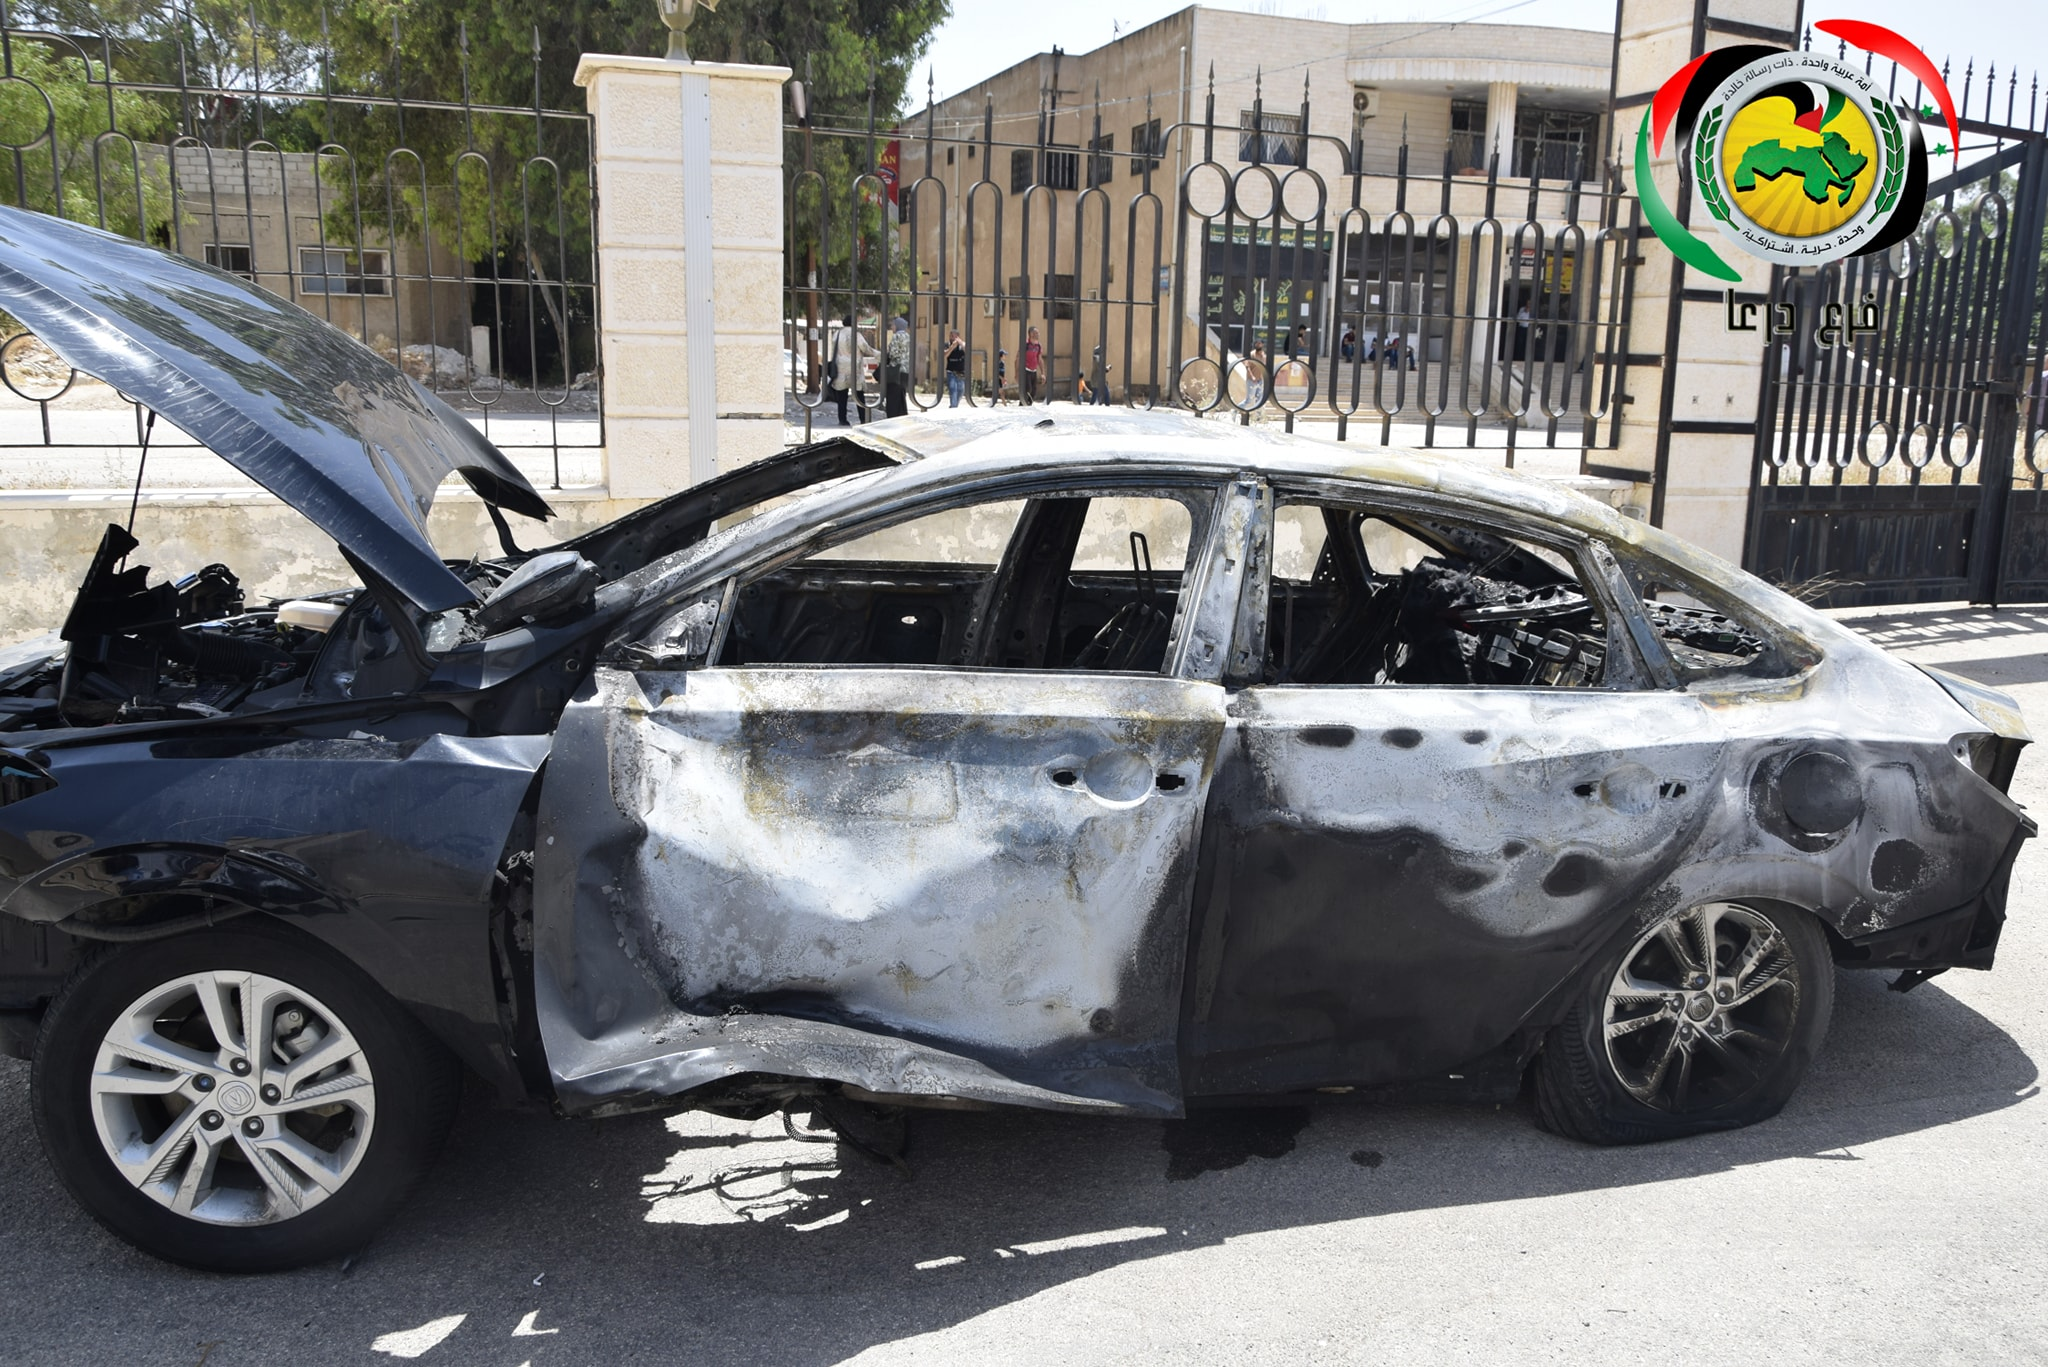 An engineering brigade member was killed while dismantling a bomb planted in a Baathist official's car in Daraa